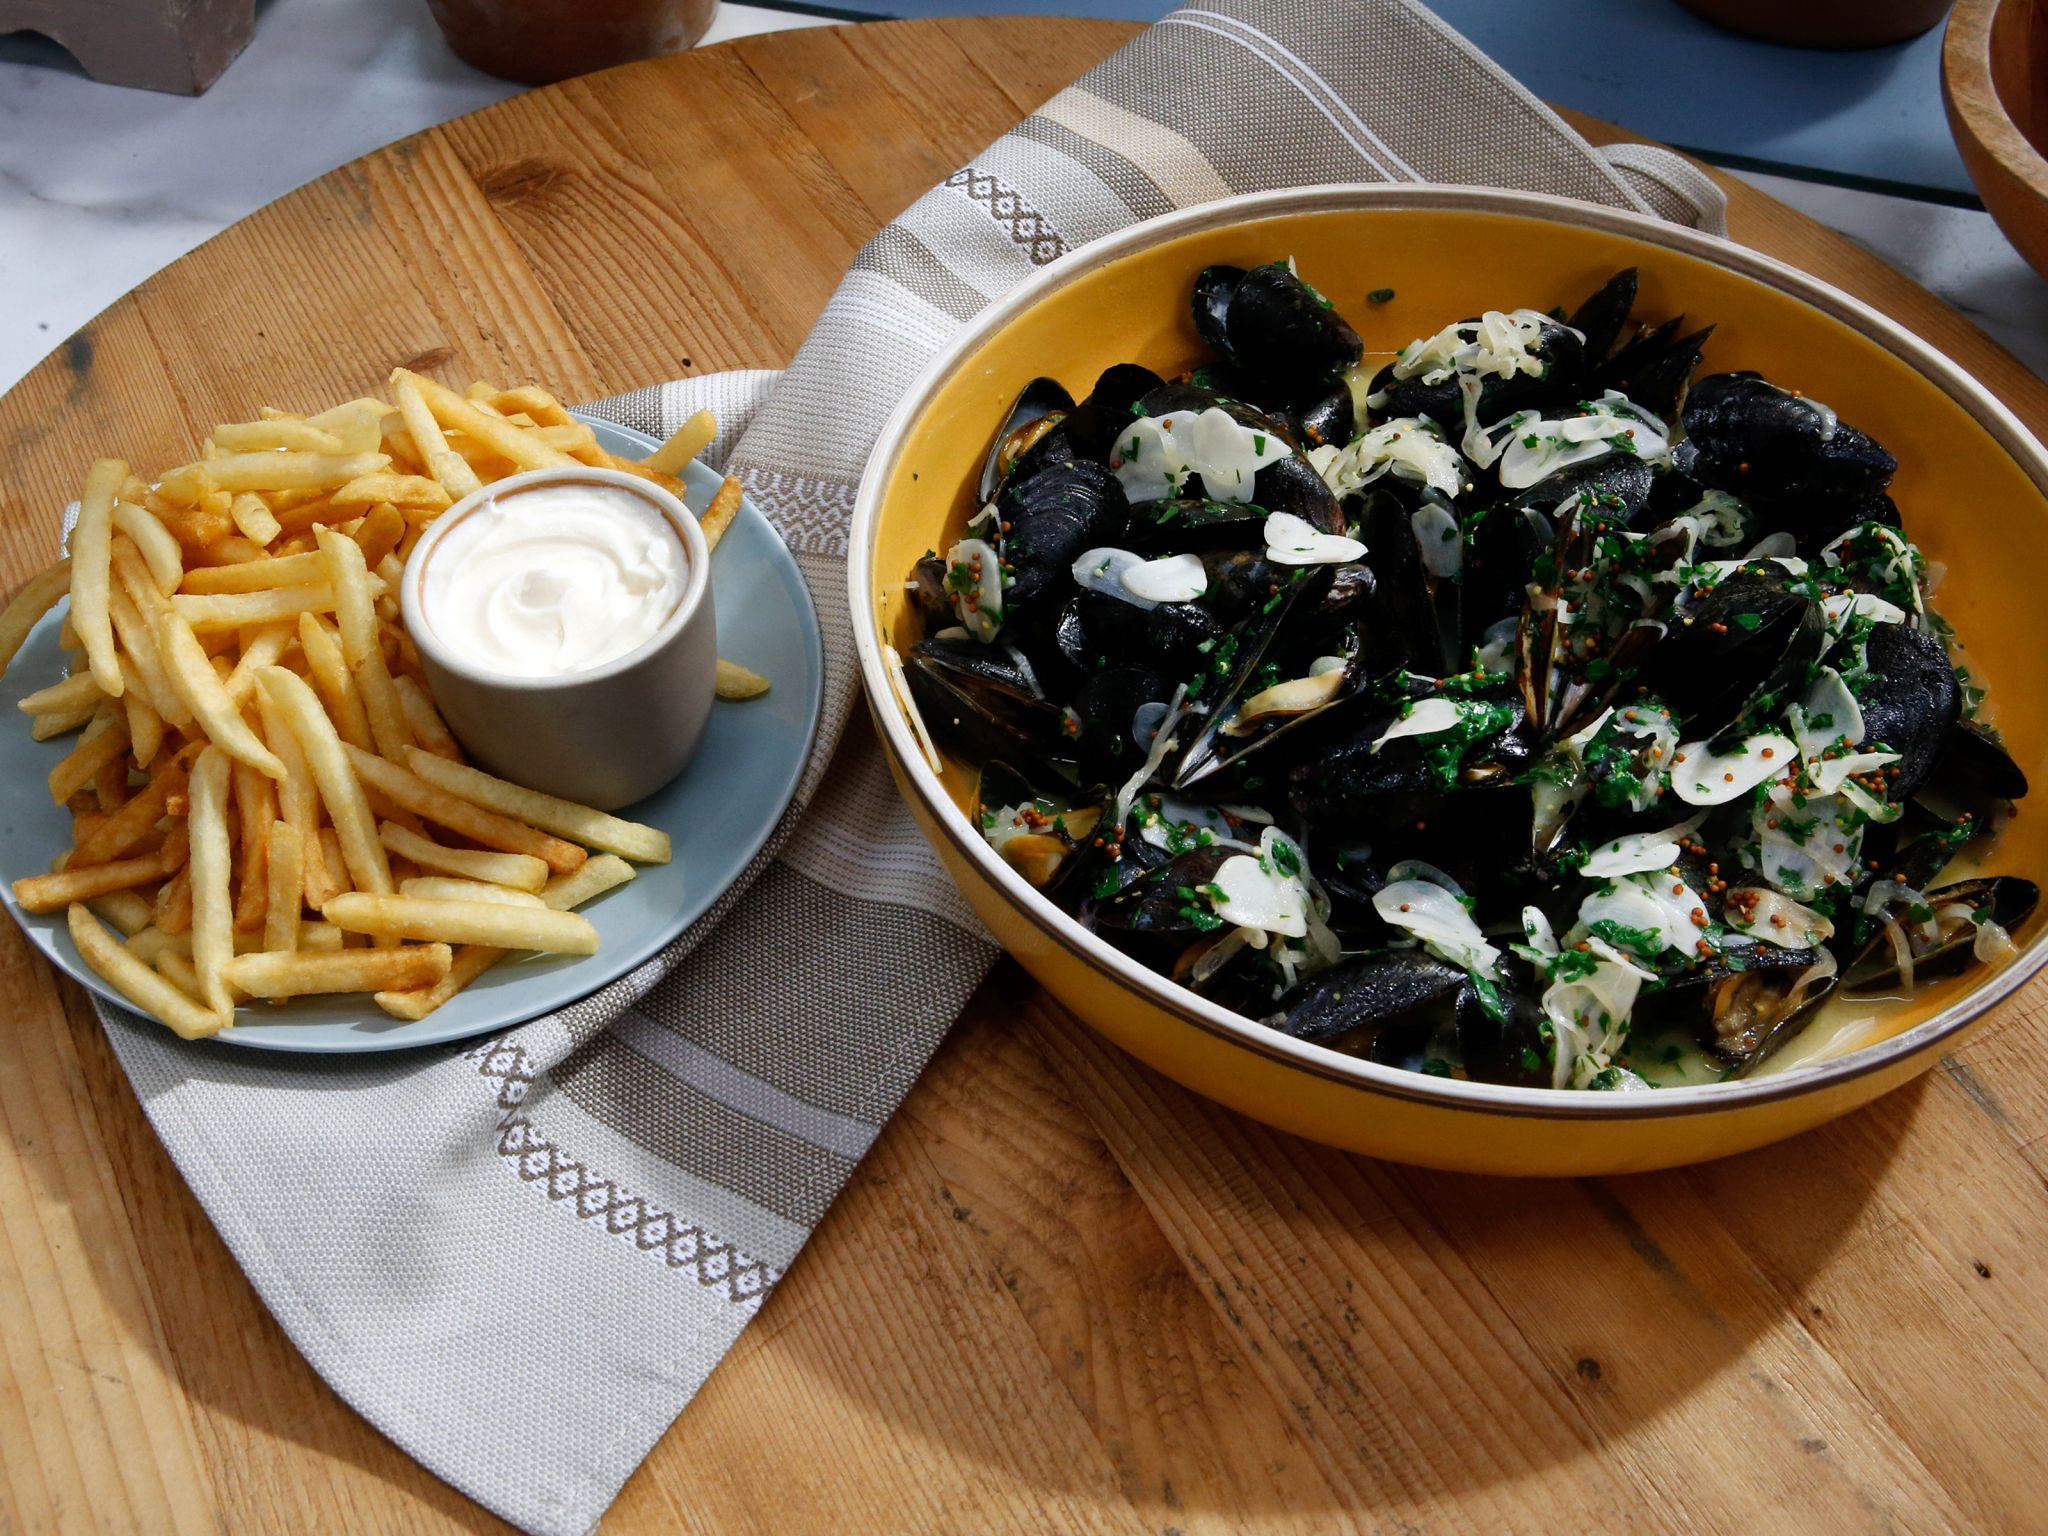 Classic Moules Frites : A classic French pairing, mussels and french fries create the ultimate savory combo. For his broth, Geoffrey opts for a creamy white wine sauce laced with a bit of whole-grain mustard.